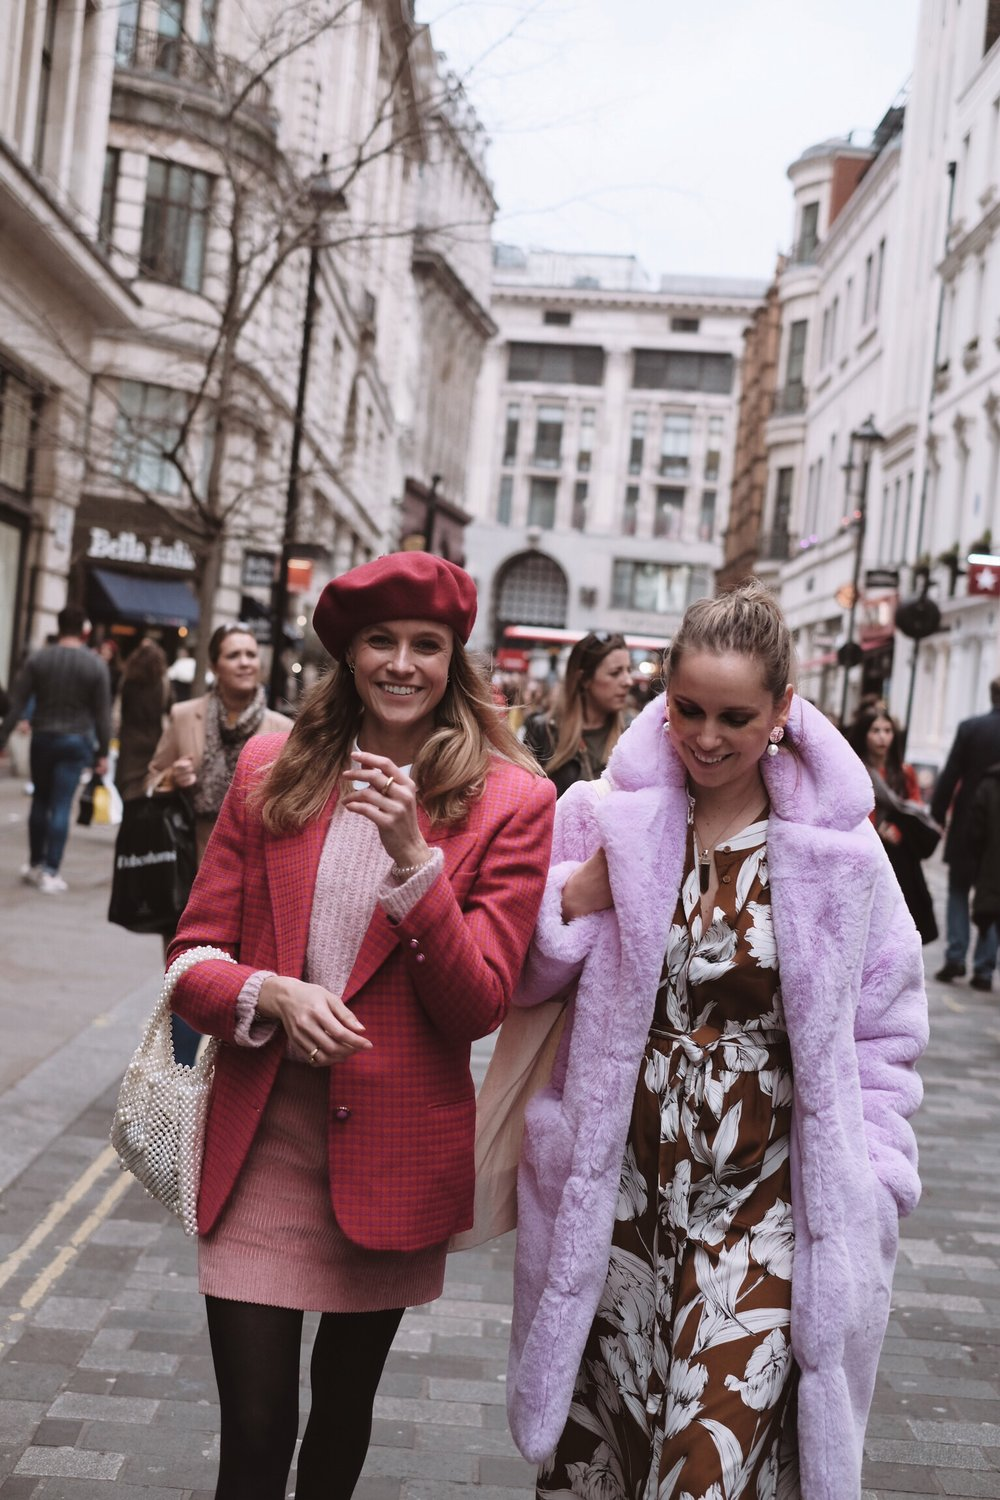 LOTS OF COLOUR! - Our first day at London Fashion Week was on Saturday the17th of February. We all decided to dress in quite colourful outfits.Annabell was mixing, vintage, high end and high street items, dressed head to toe in different shades of pink. Wearing a gorgeous vintage blazer and beret together with her maroon Balenciaga's. Her pink cord skirt and blouse is from COS and the pretty pearl handbag from Mango.Zsanett was rocking her lilac faux fur coat from Top Shop together with a floaty dress from Lindex and a selection of chunky jewellery pieces. To keep it more relaxed she paired the outfit with a classic pair of white Reebok trainers.Sara wore her brand new hand knitted jumper, from the Camilla Pihl design collection. Paired with wide-legged checkered trousers and a bright red puffer jacket to add some extra colour.